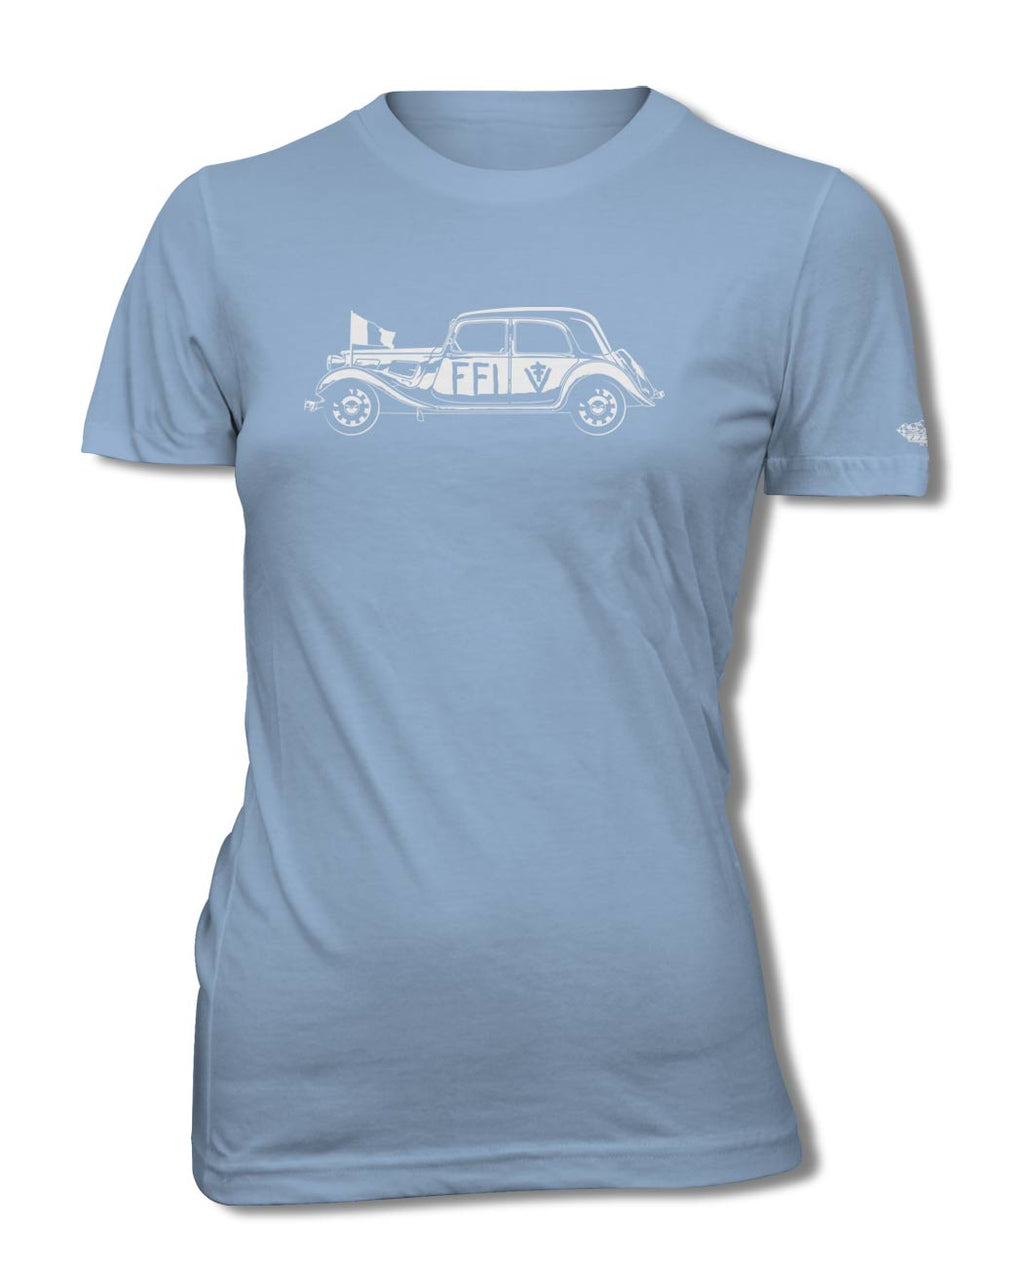 Citroen Traction Avant 11BL FFI 1944 - 1945 T-Shirt - Women - Side View